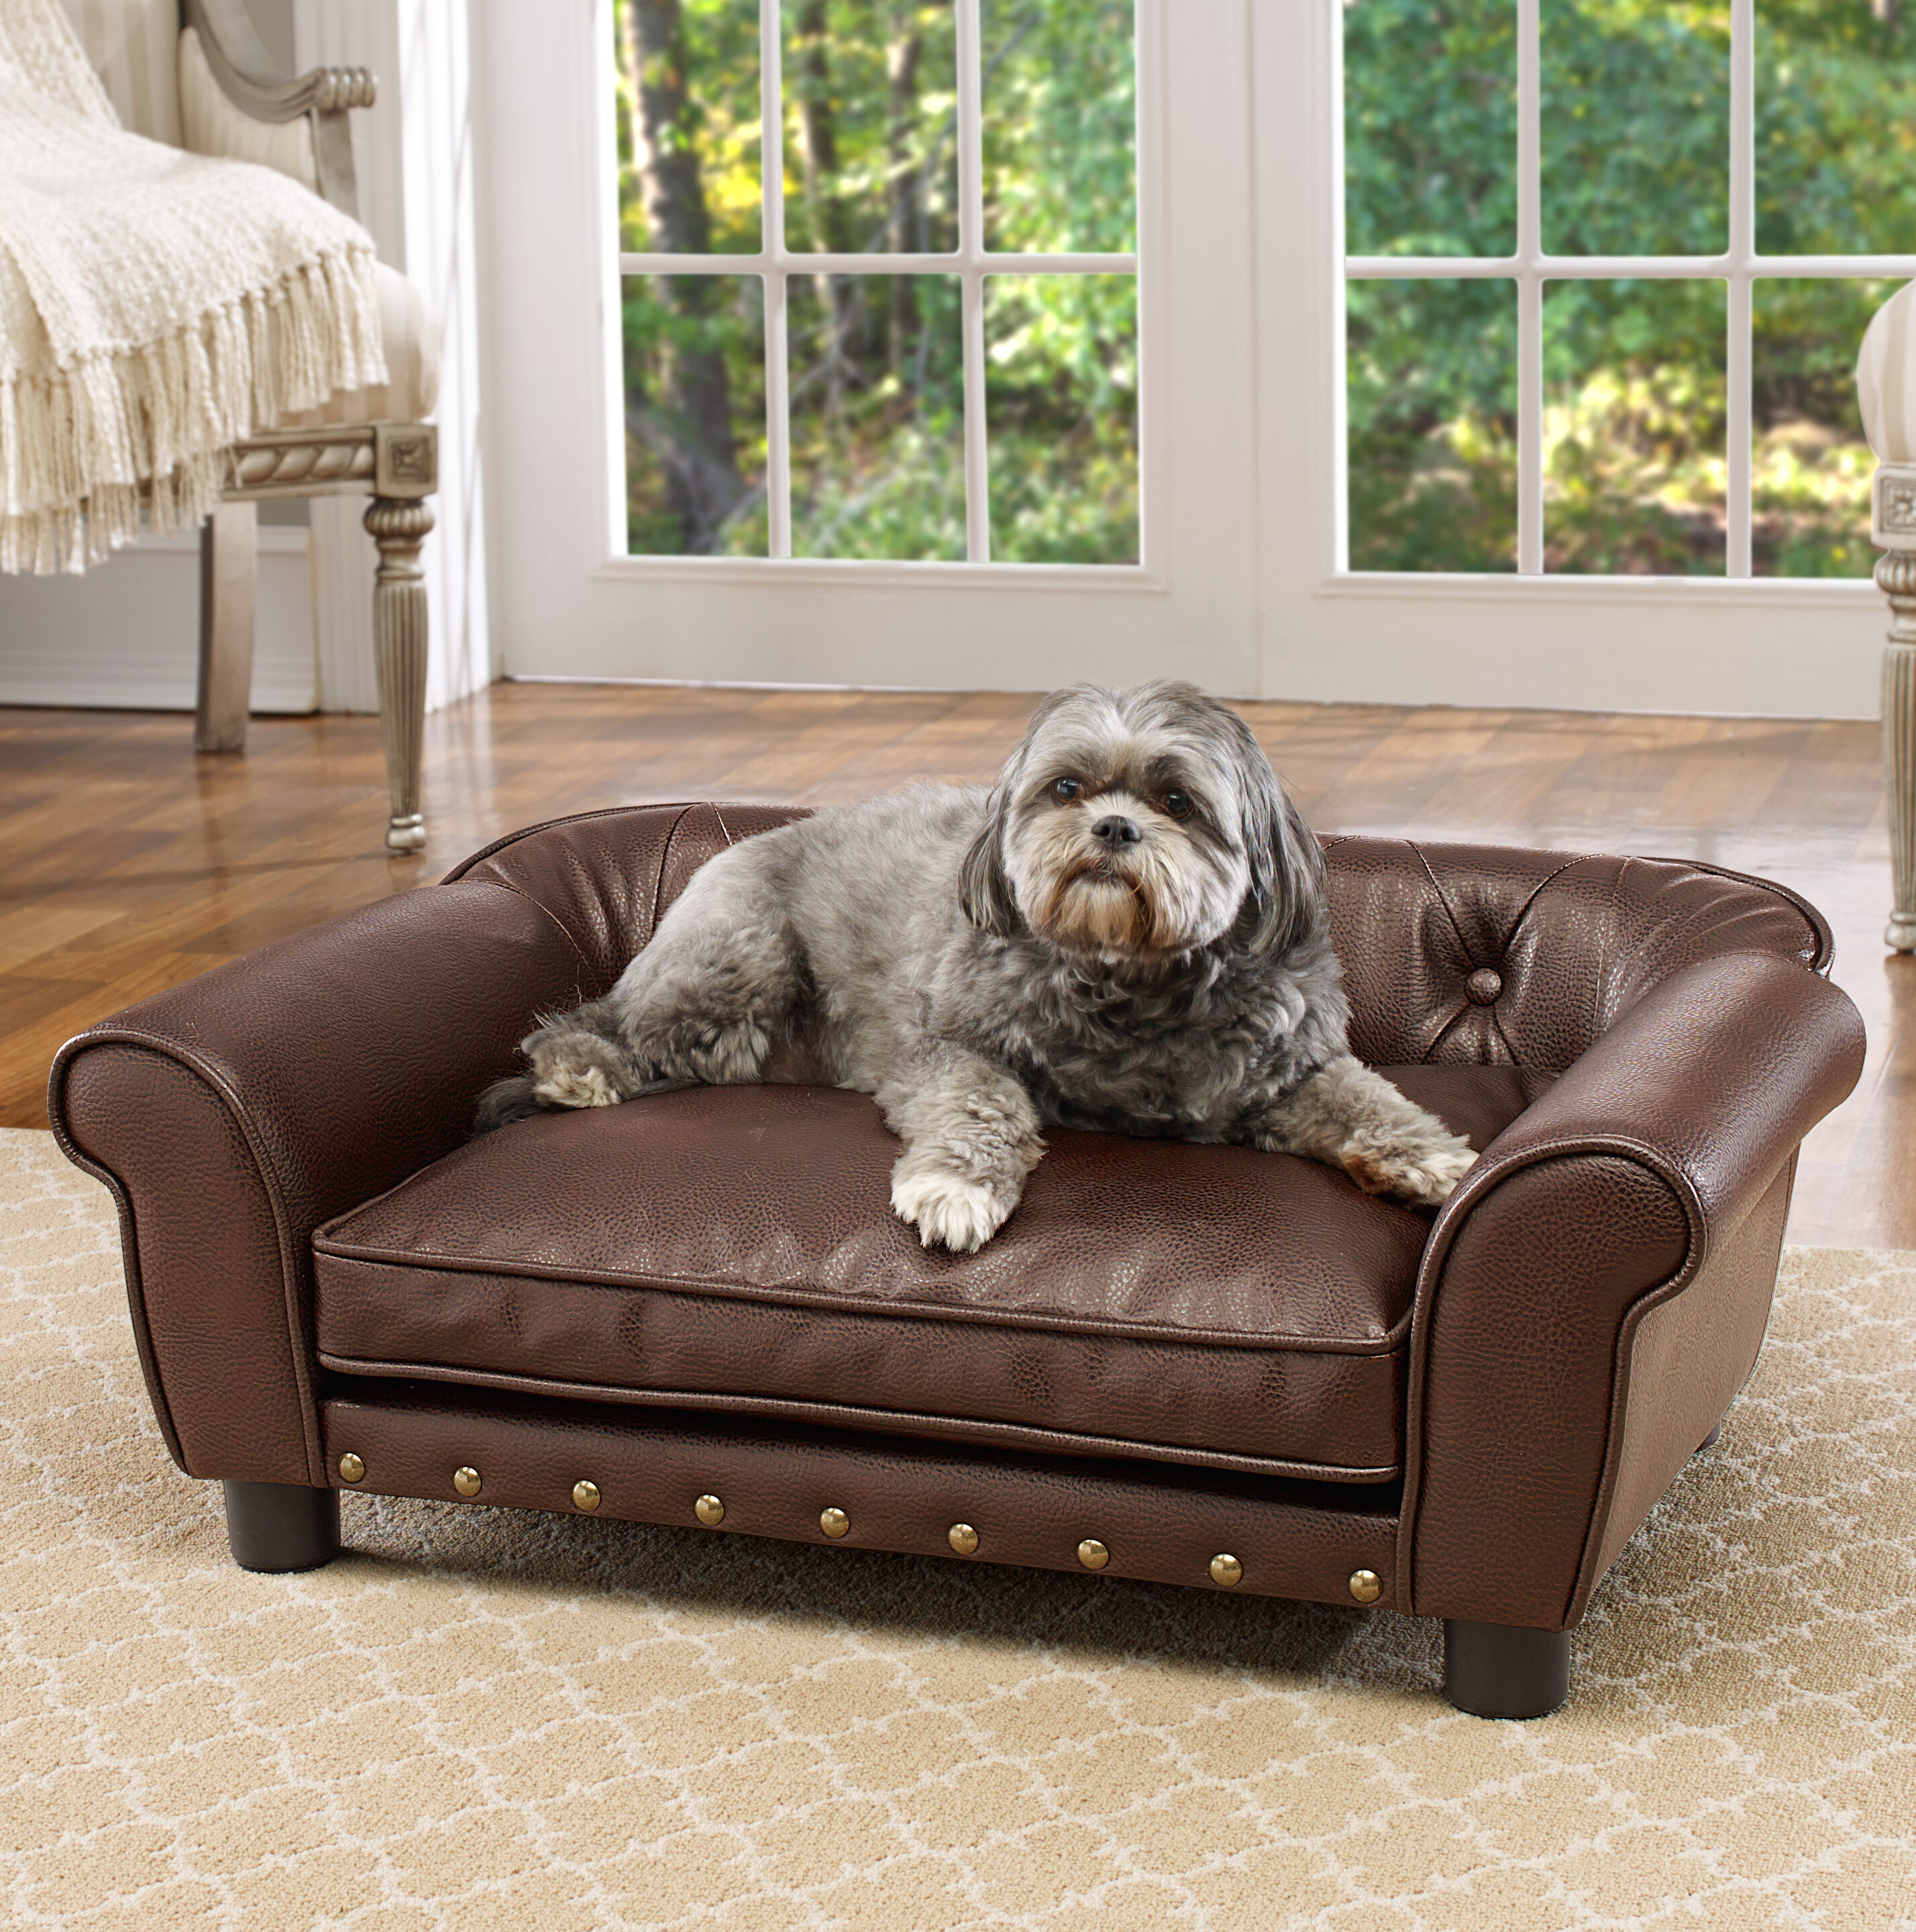 of our leather dog selection front gray dogs for at look serta take beds couch large bed buy a pet